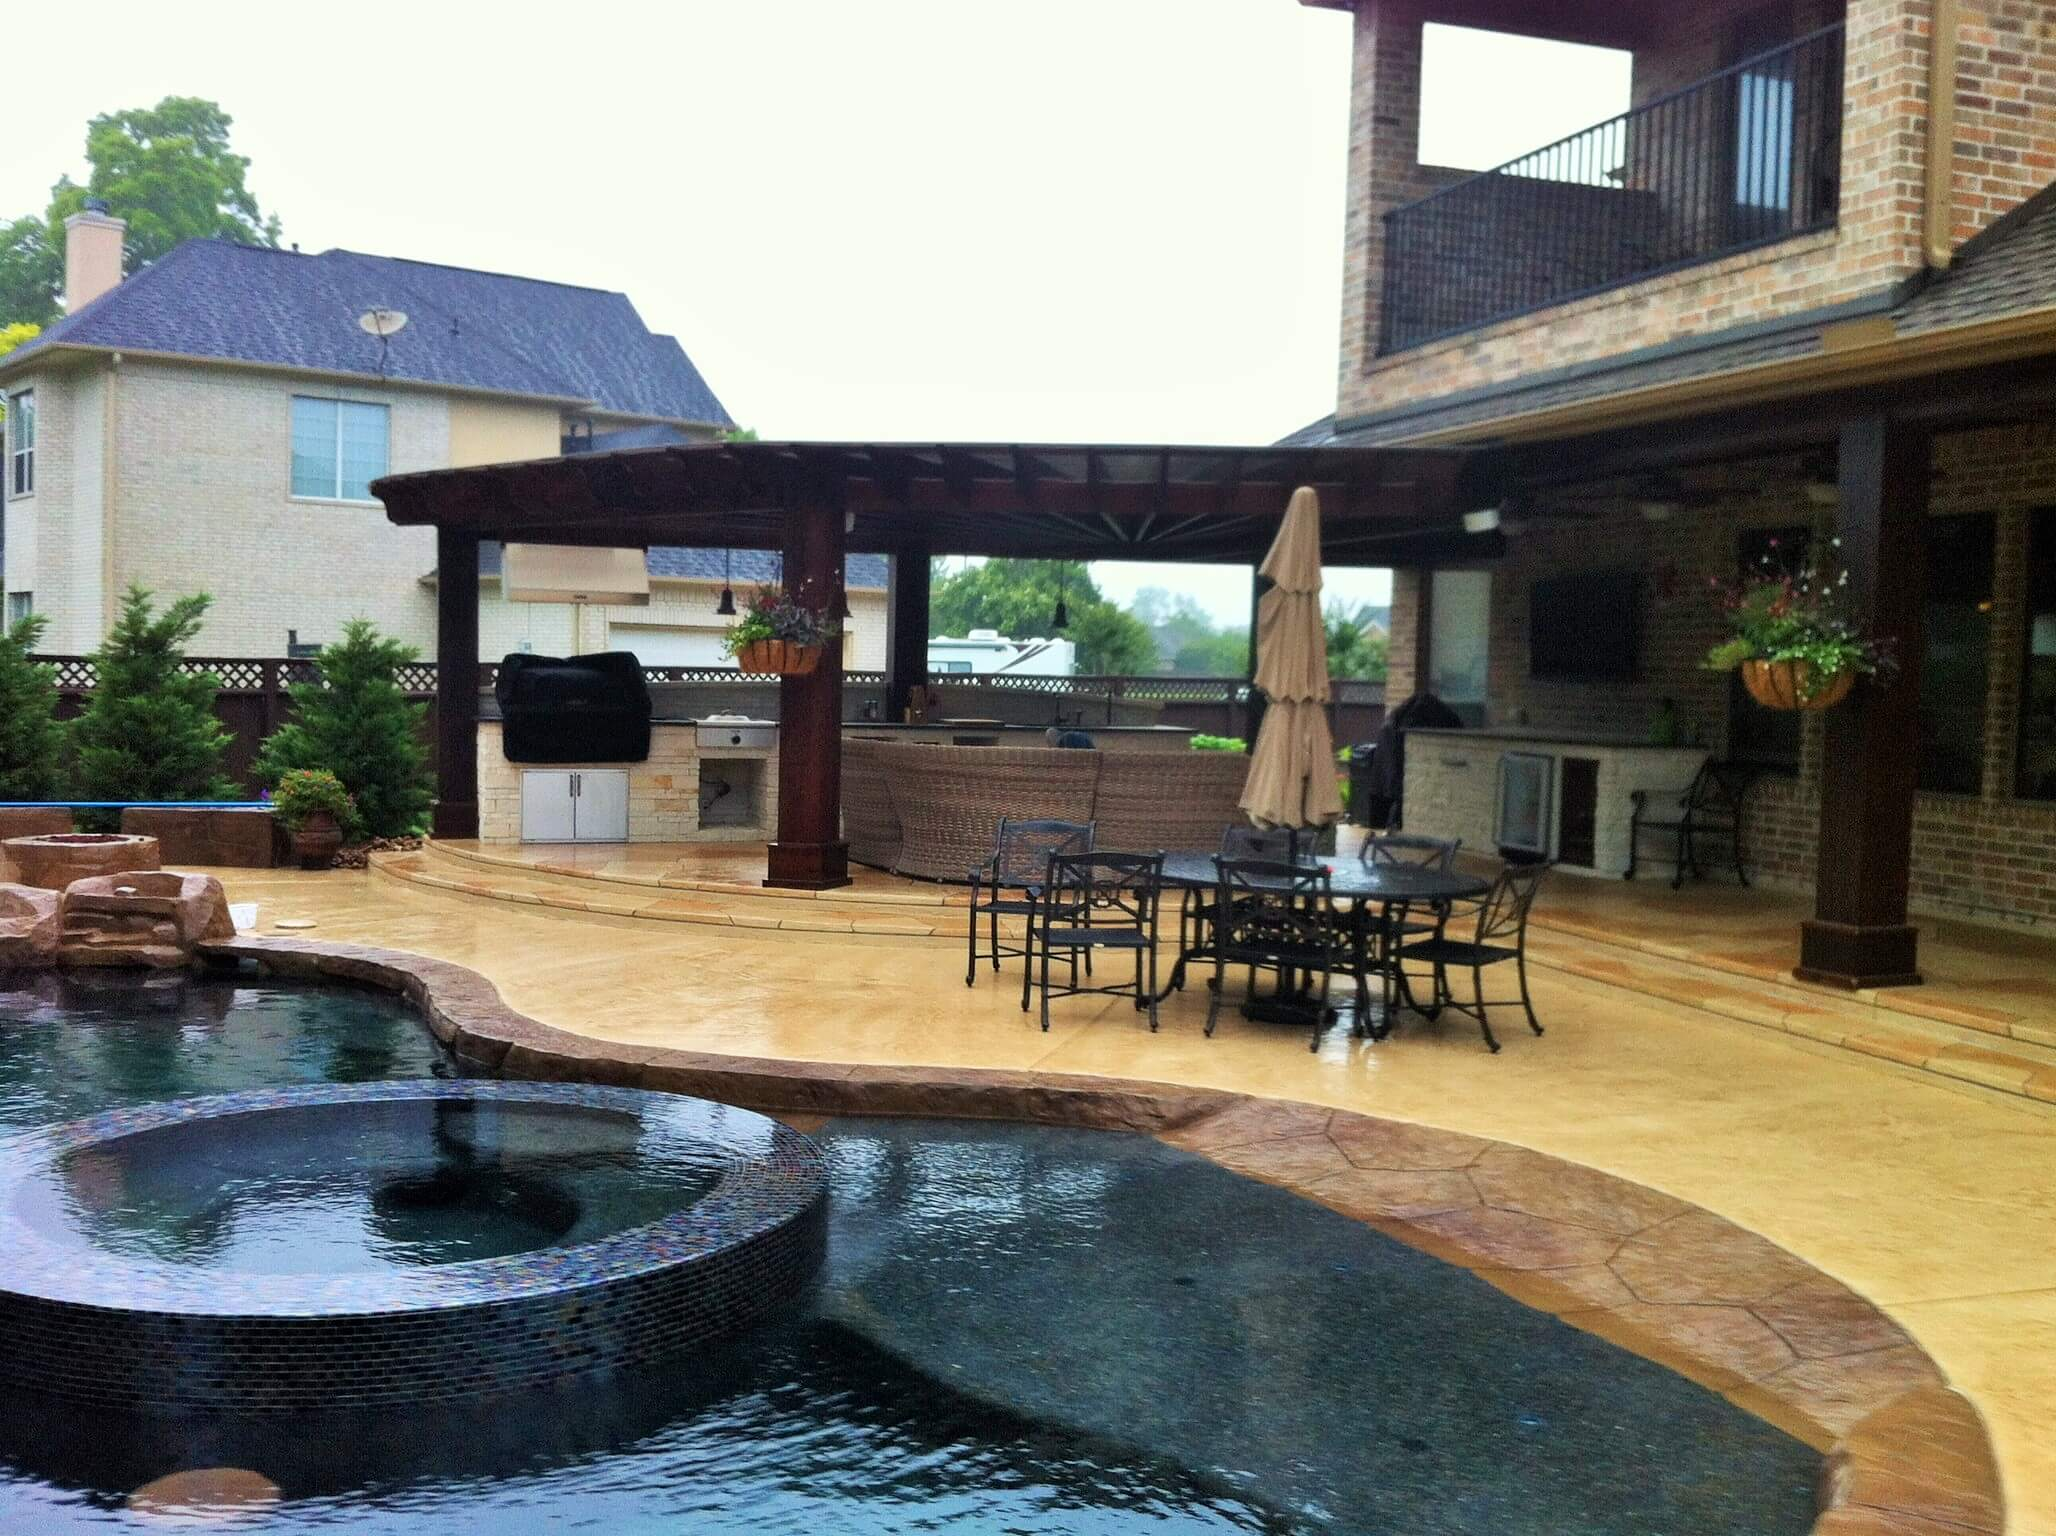 Katy pool design houston pool builder fulshear outdoor living for Pool design katy